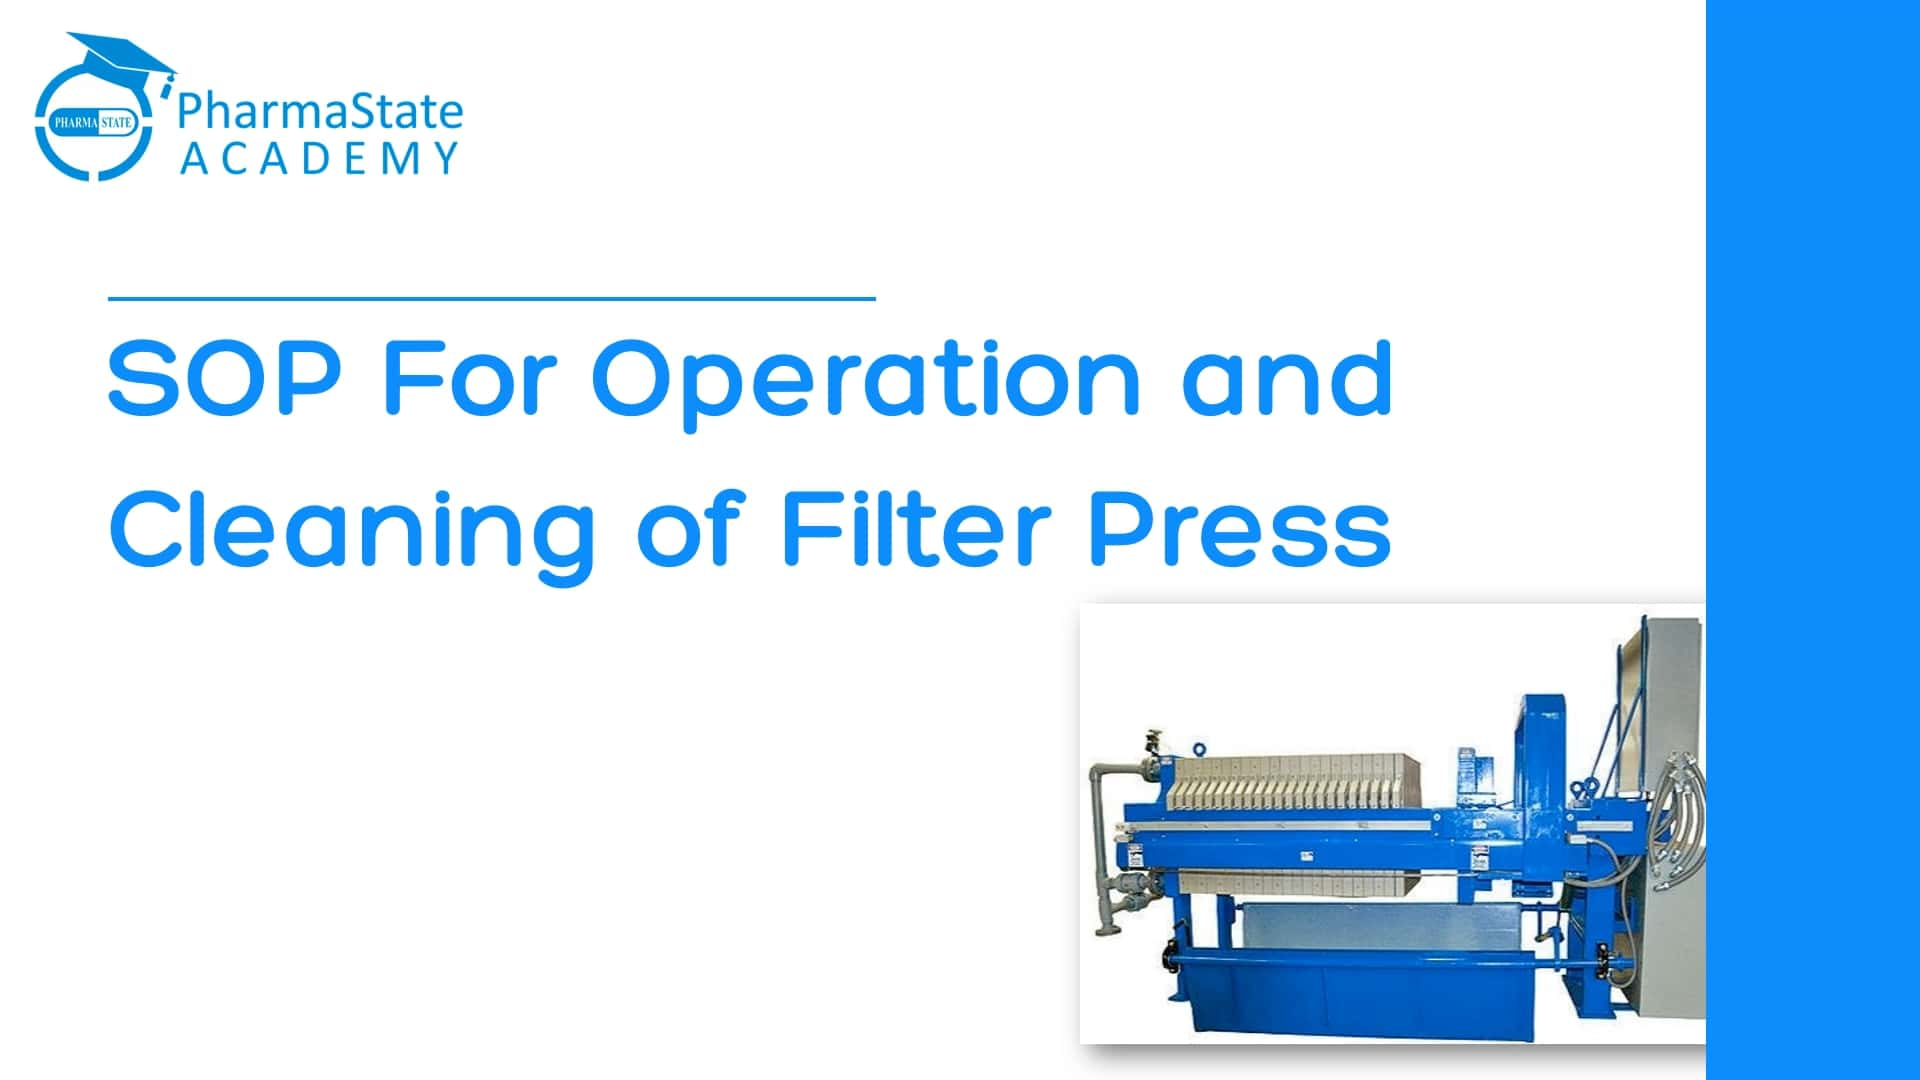 SOP For Operation and Cleaning of Filter Press